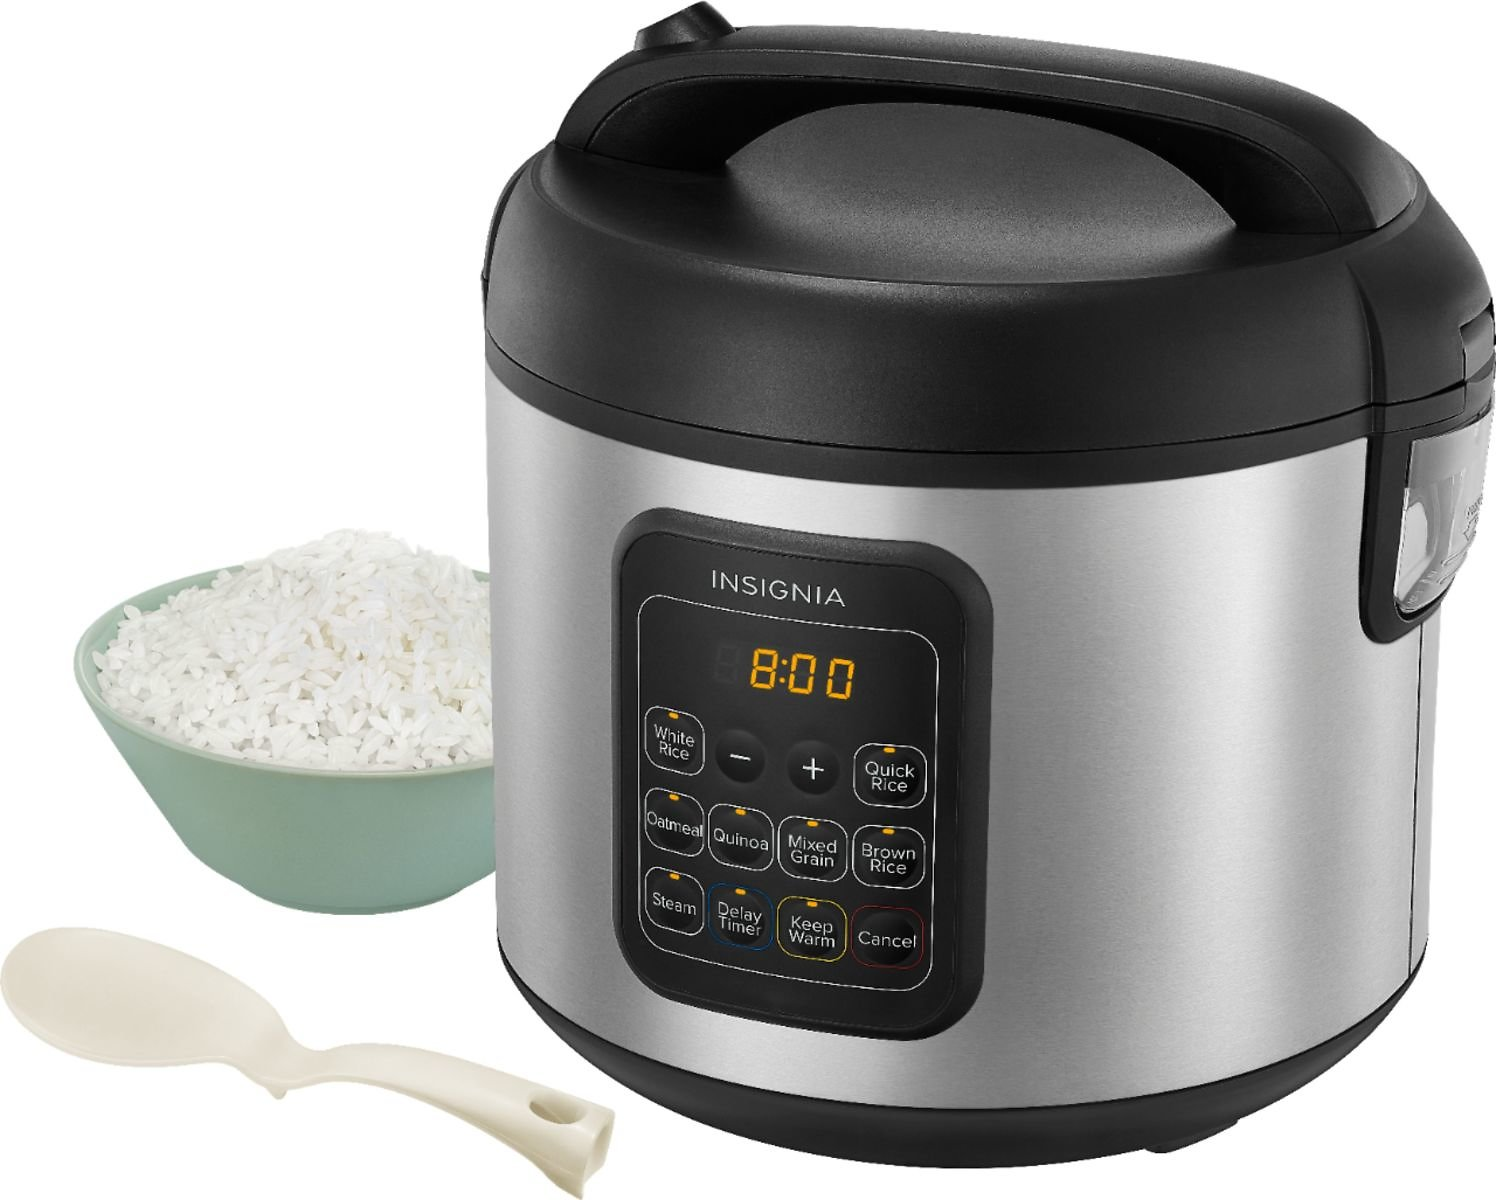 Insignia 20-Cup Rice Cooker & Steamer